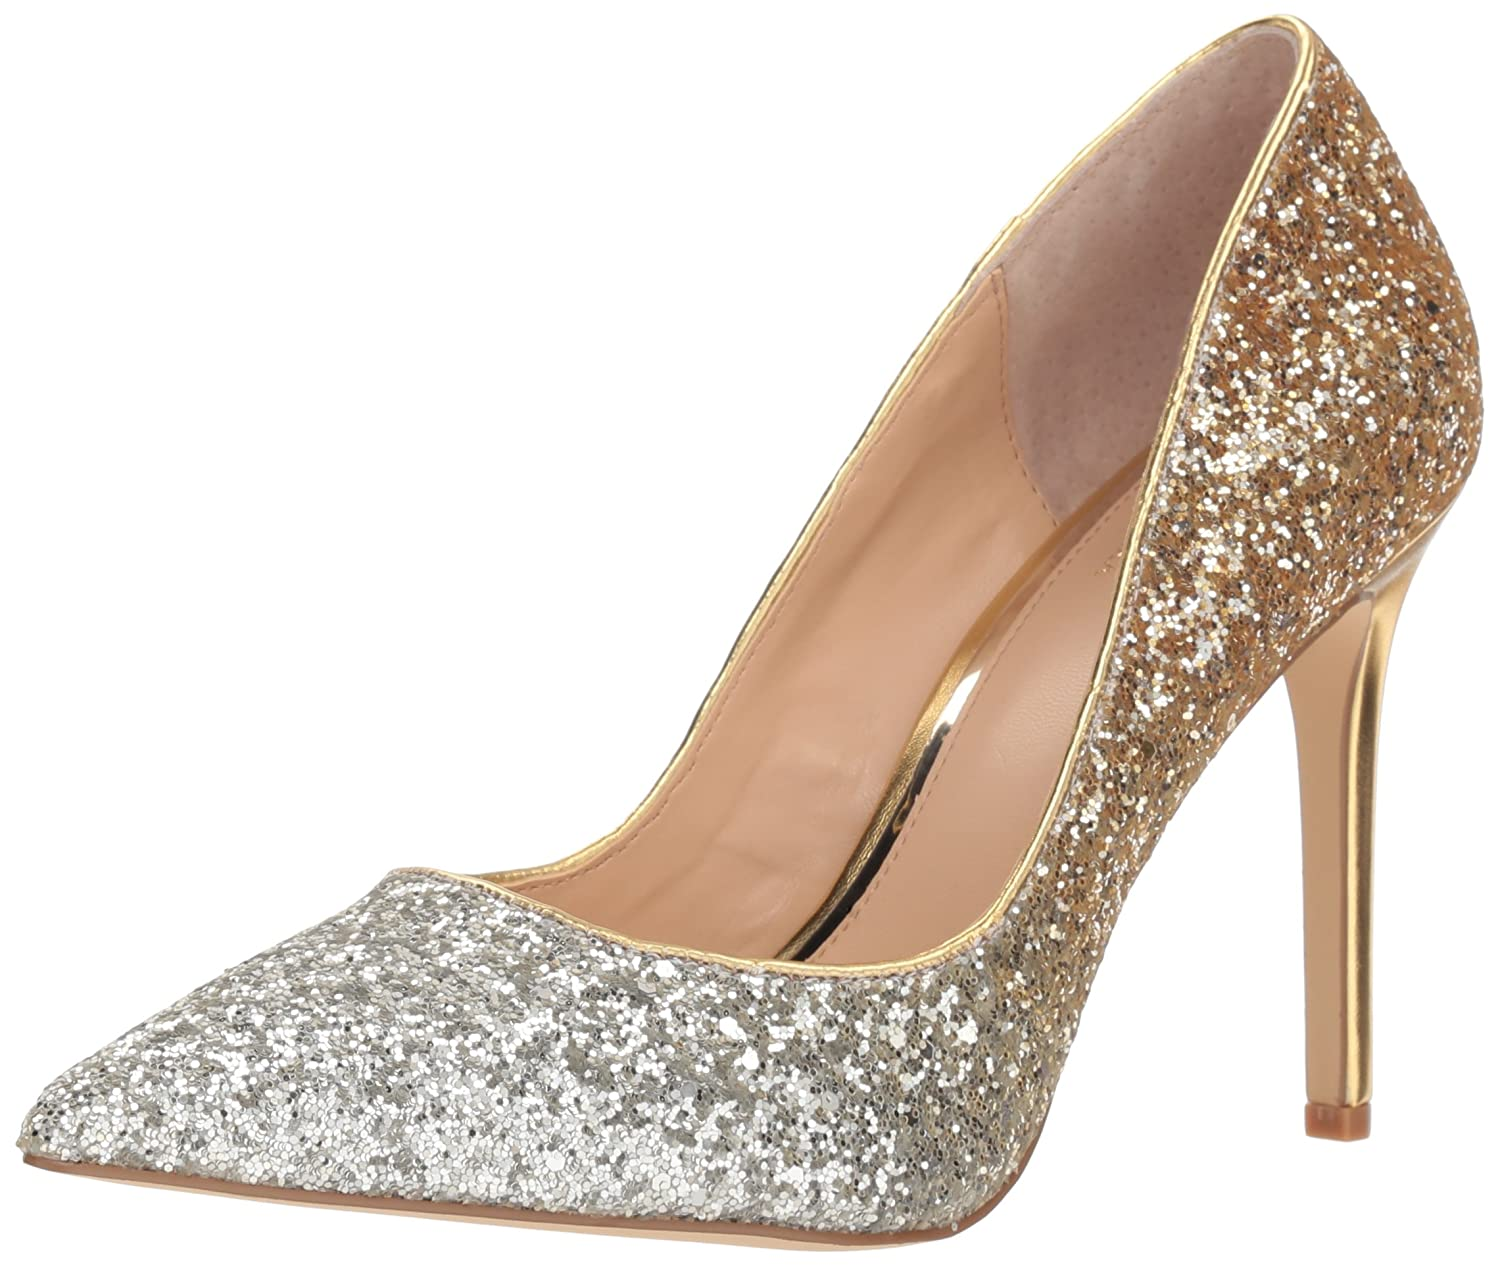 Badgley Mischka Jewel Women's Malta Pump Jewel Badgley Mischka JW2514